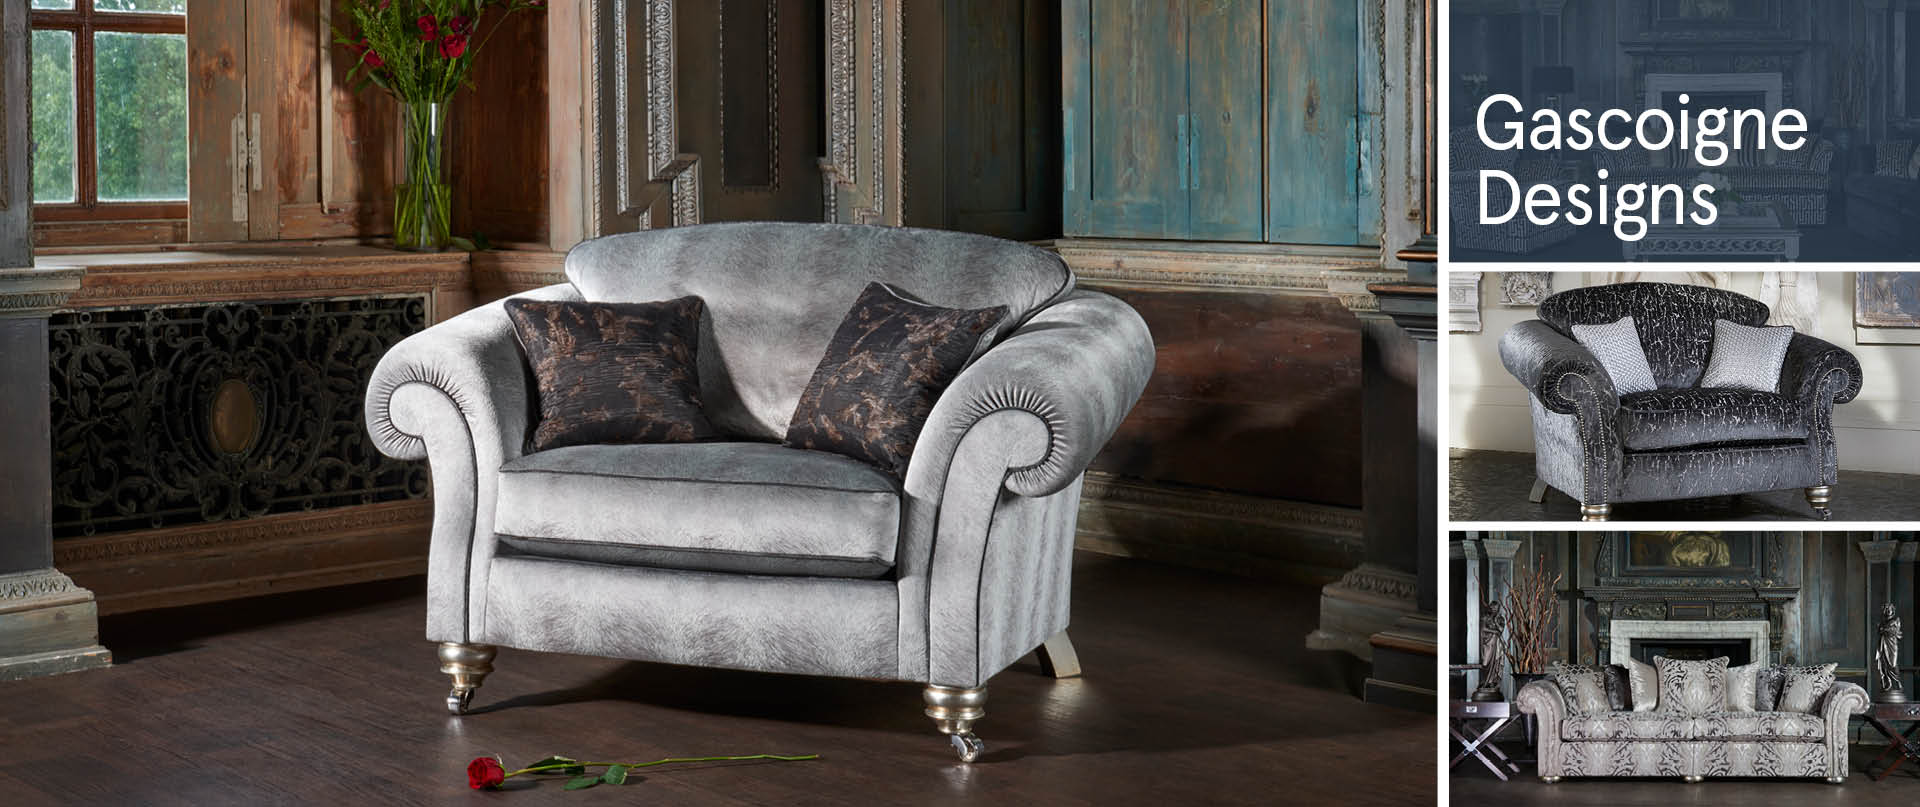 Gascoigne Designs Brands Directory Cousins Furniture